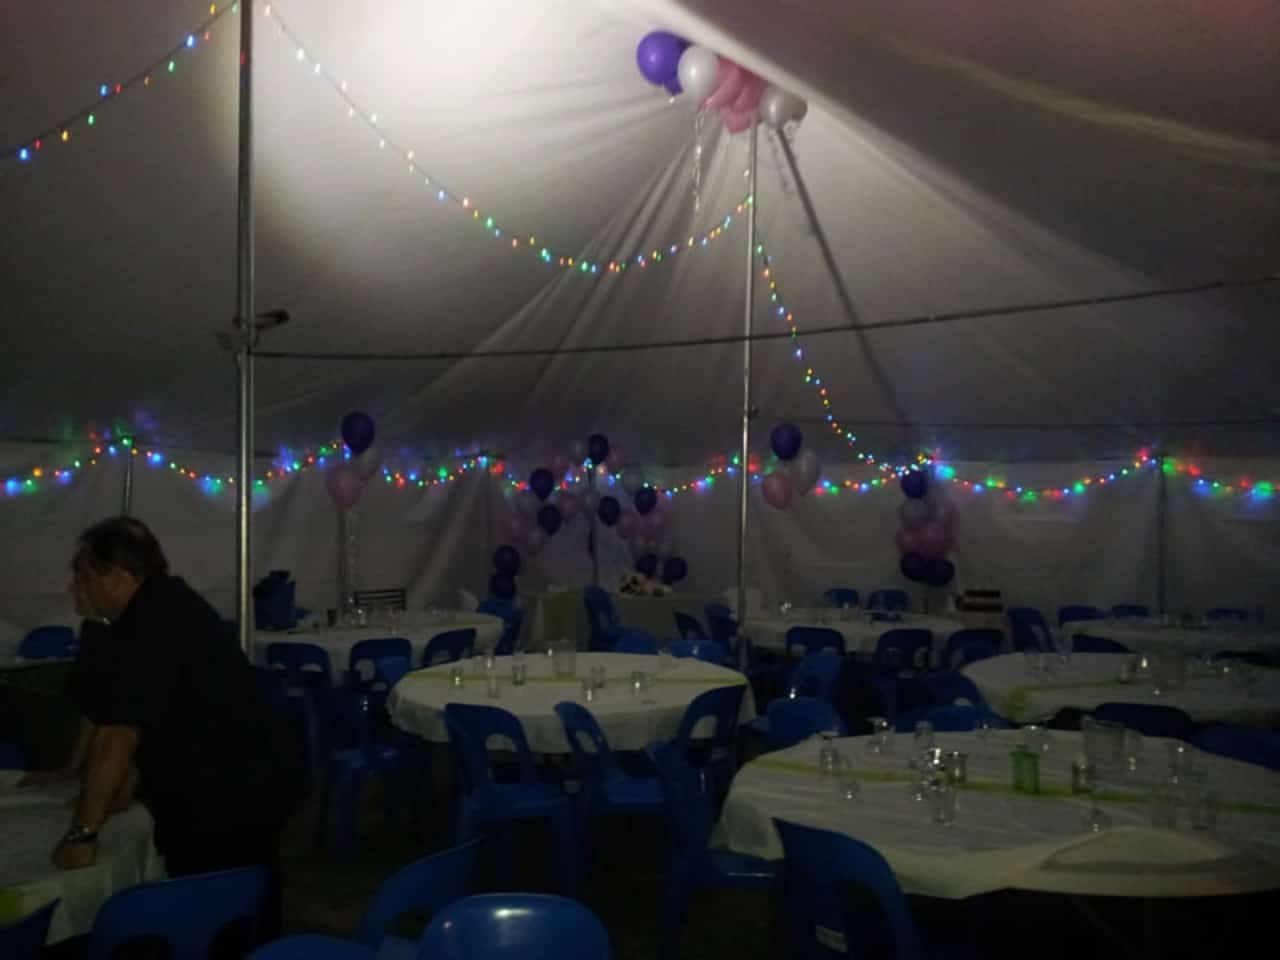 123 Party and Event Hire Business for sale 0412 179 306